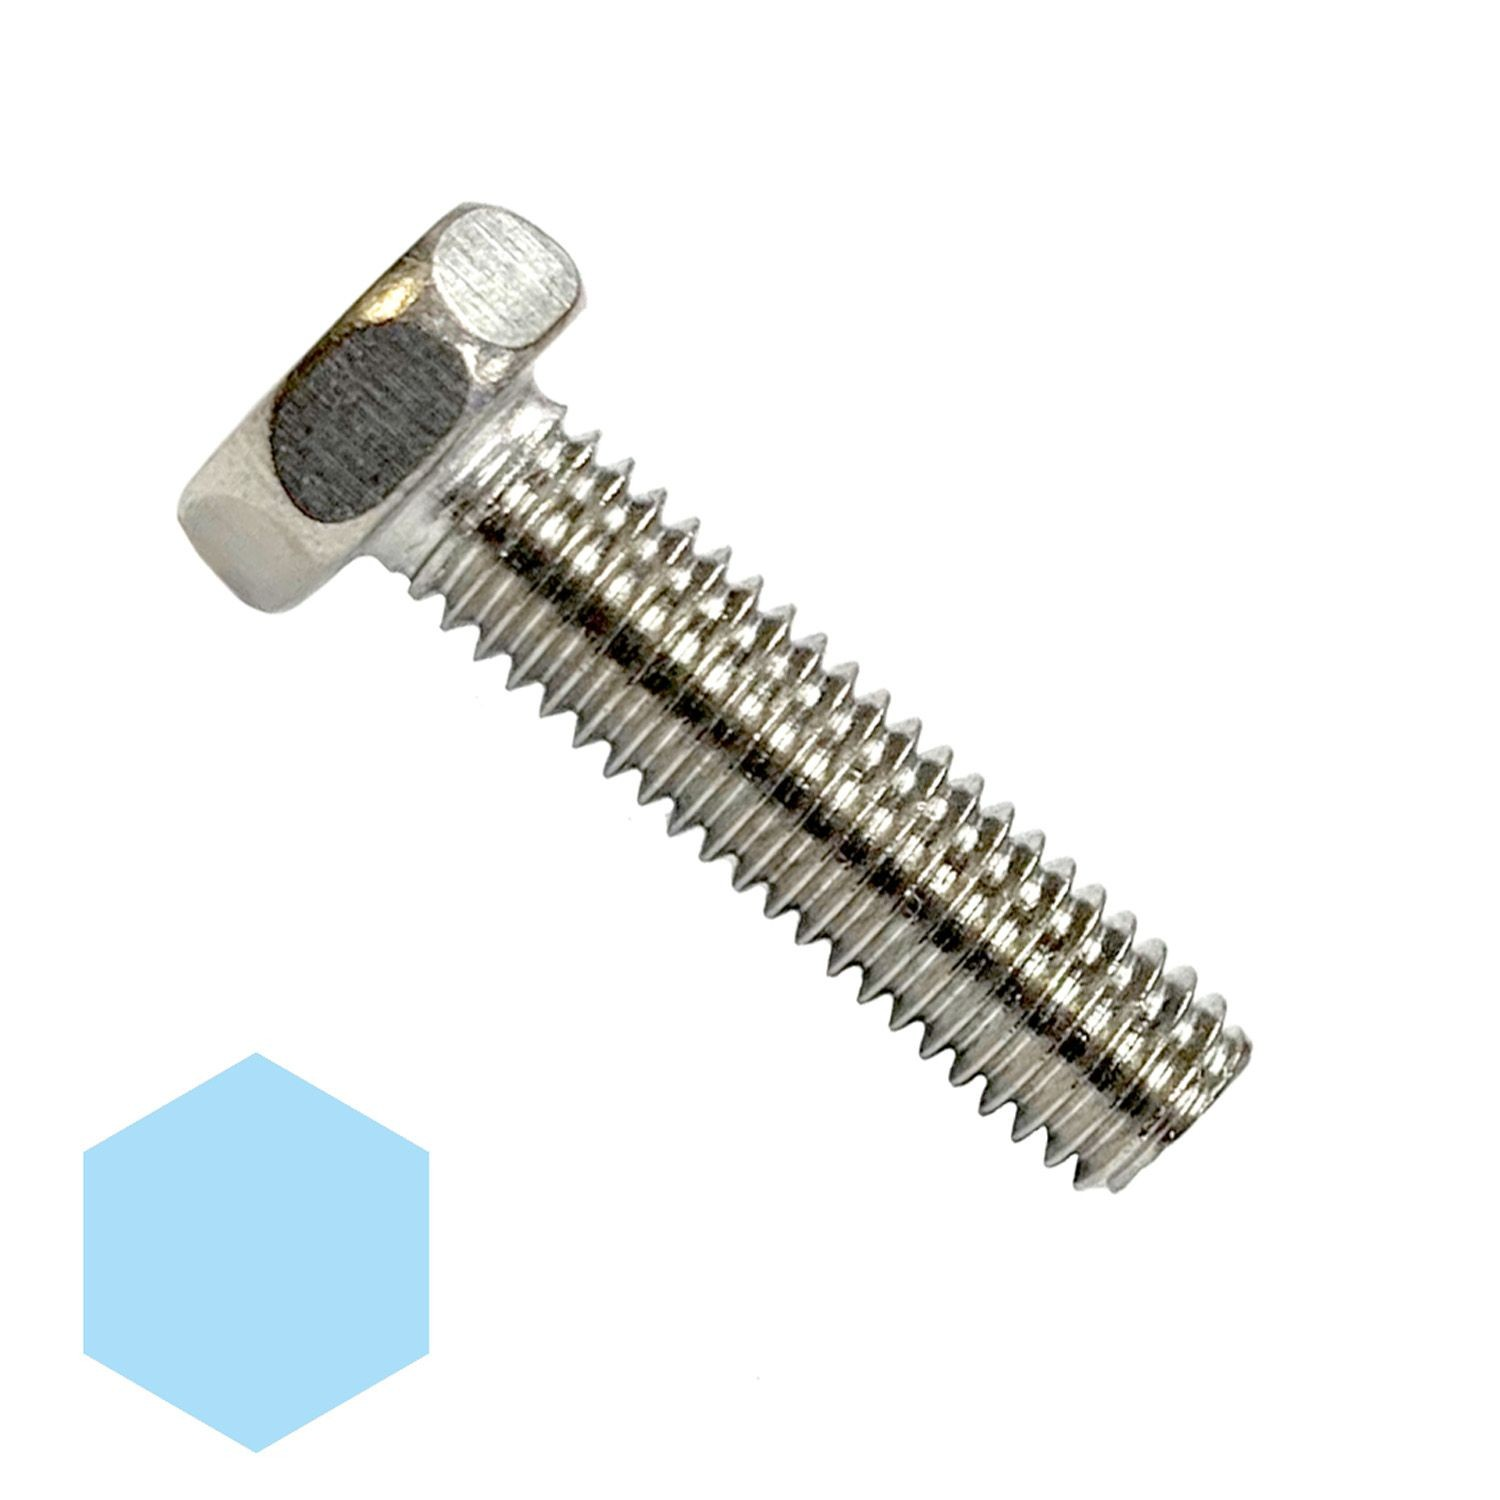 "#10-32 x 1-1/4"" Stainless Steel Hex Head Machine Screw 18-8"